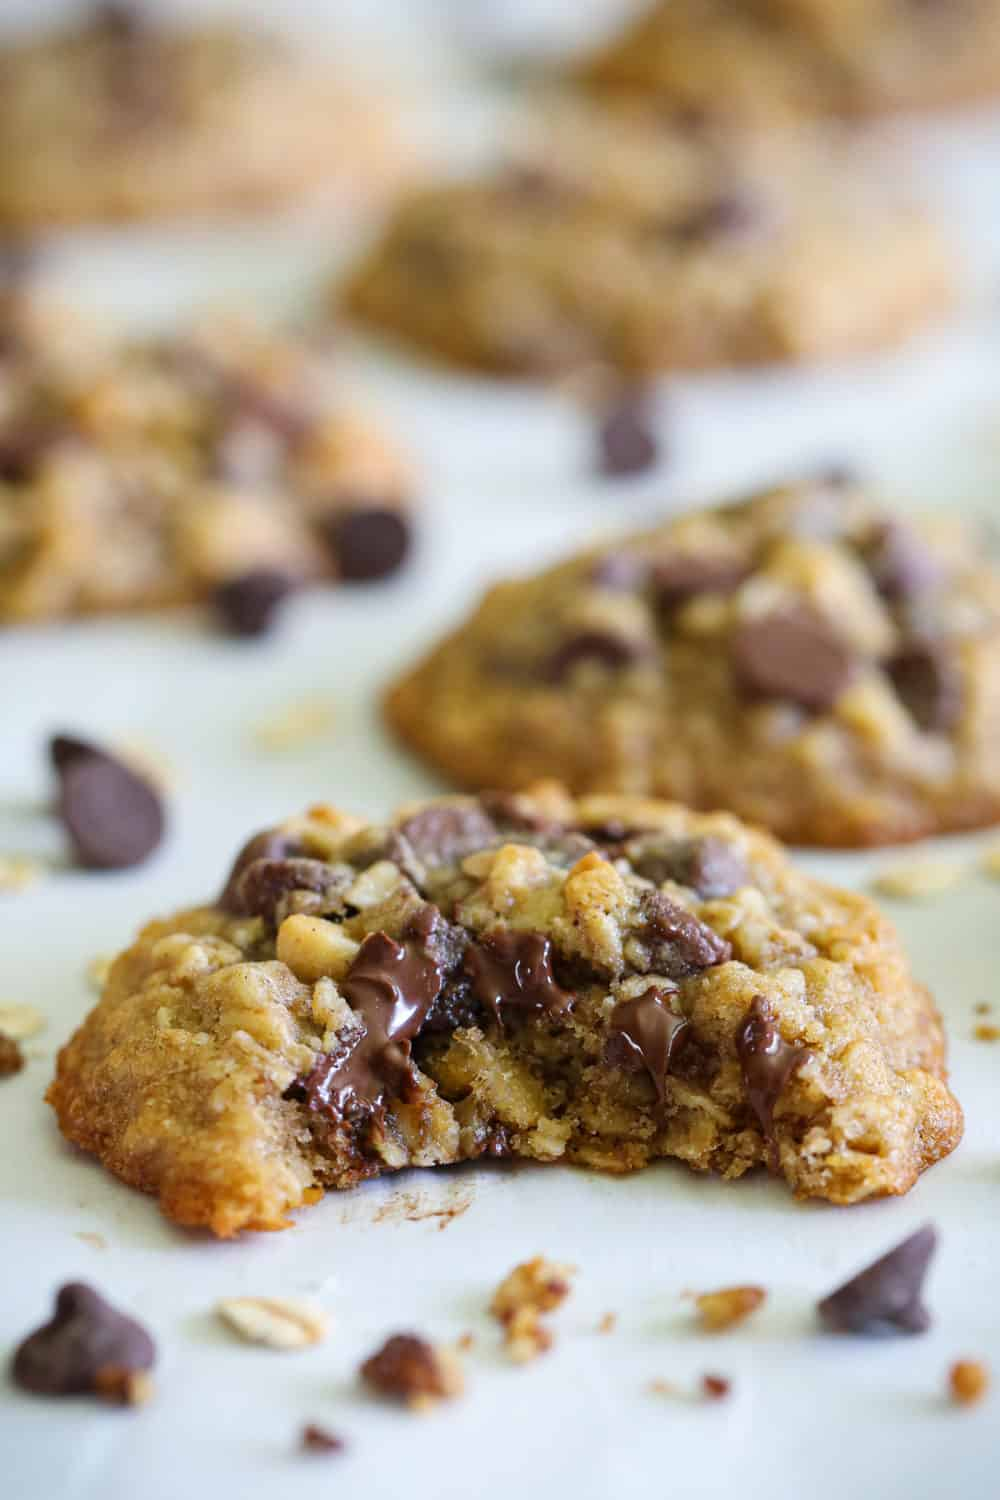 close up image of a bitten oatmeal chocolate chip cookie with walnuts and chocolate chips scattered beside it on a white background